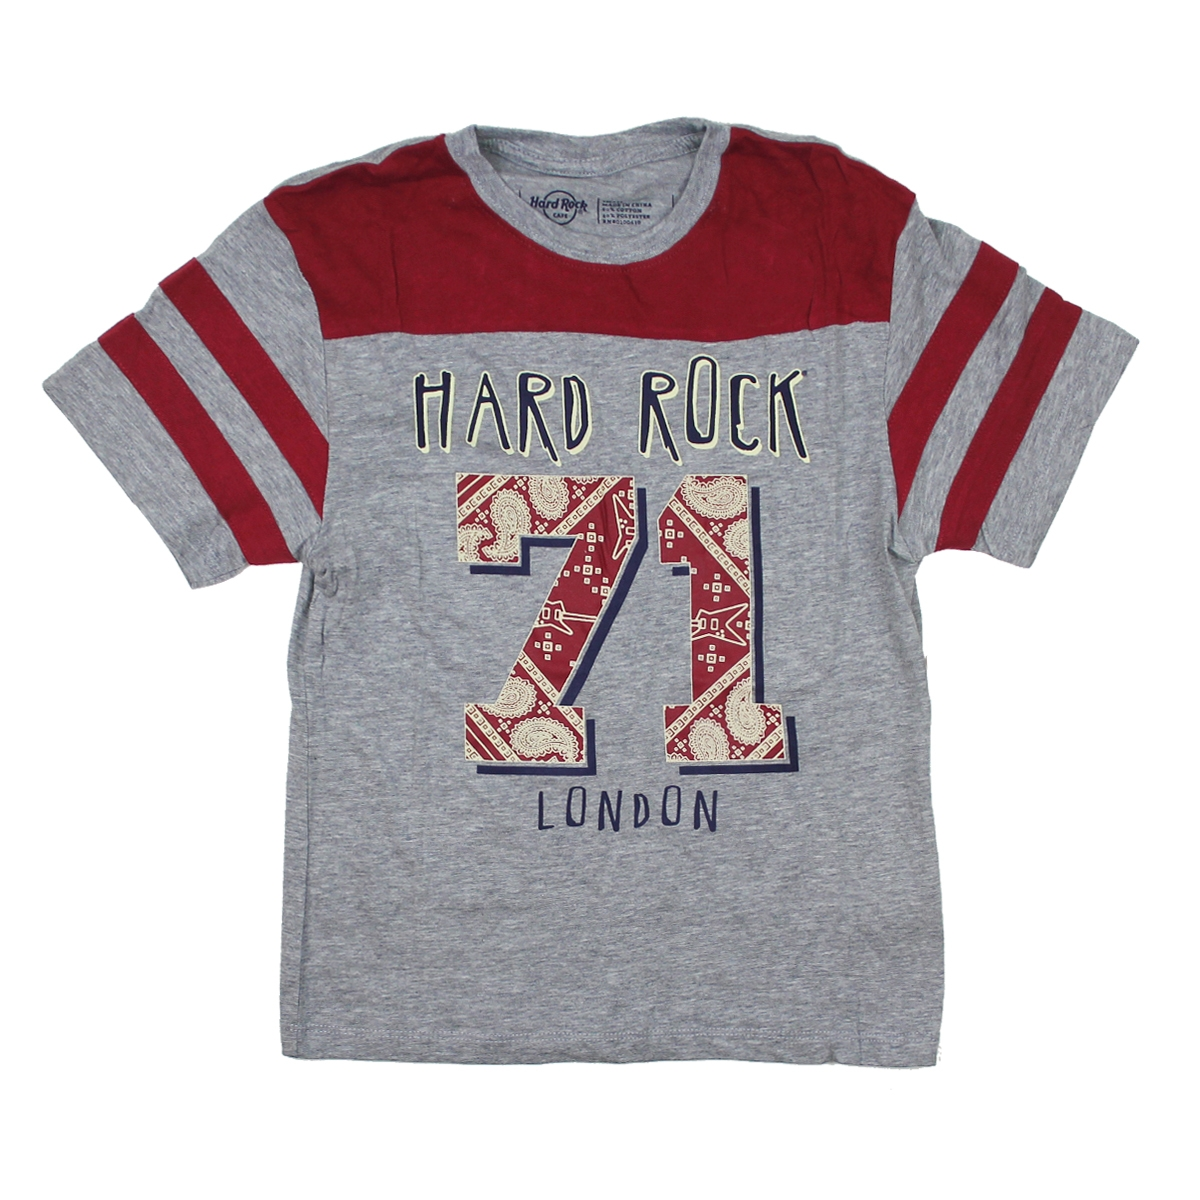 Boys Red Glow Football Tee, London 0